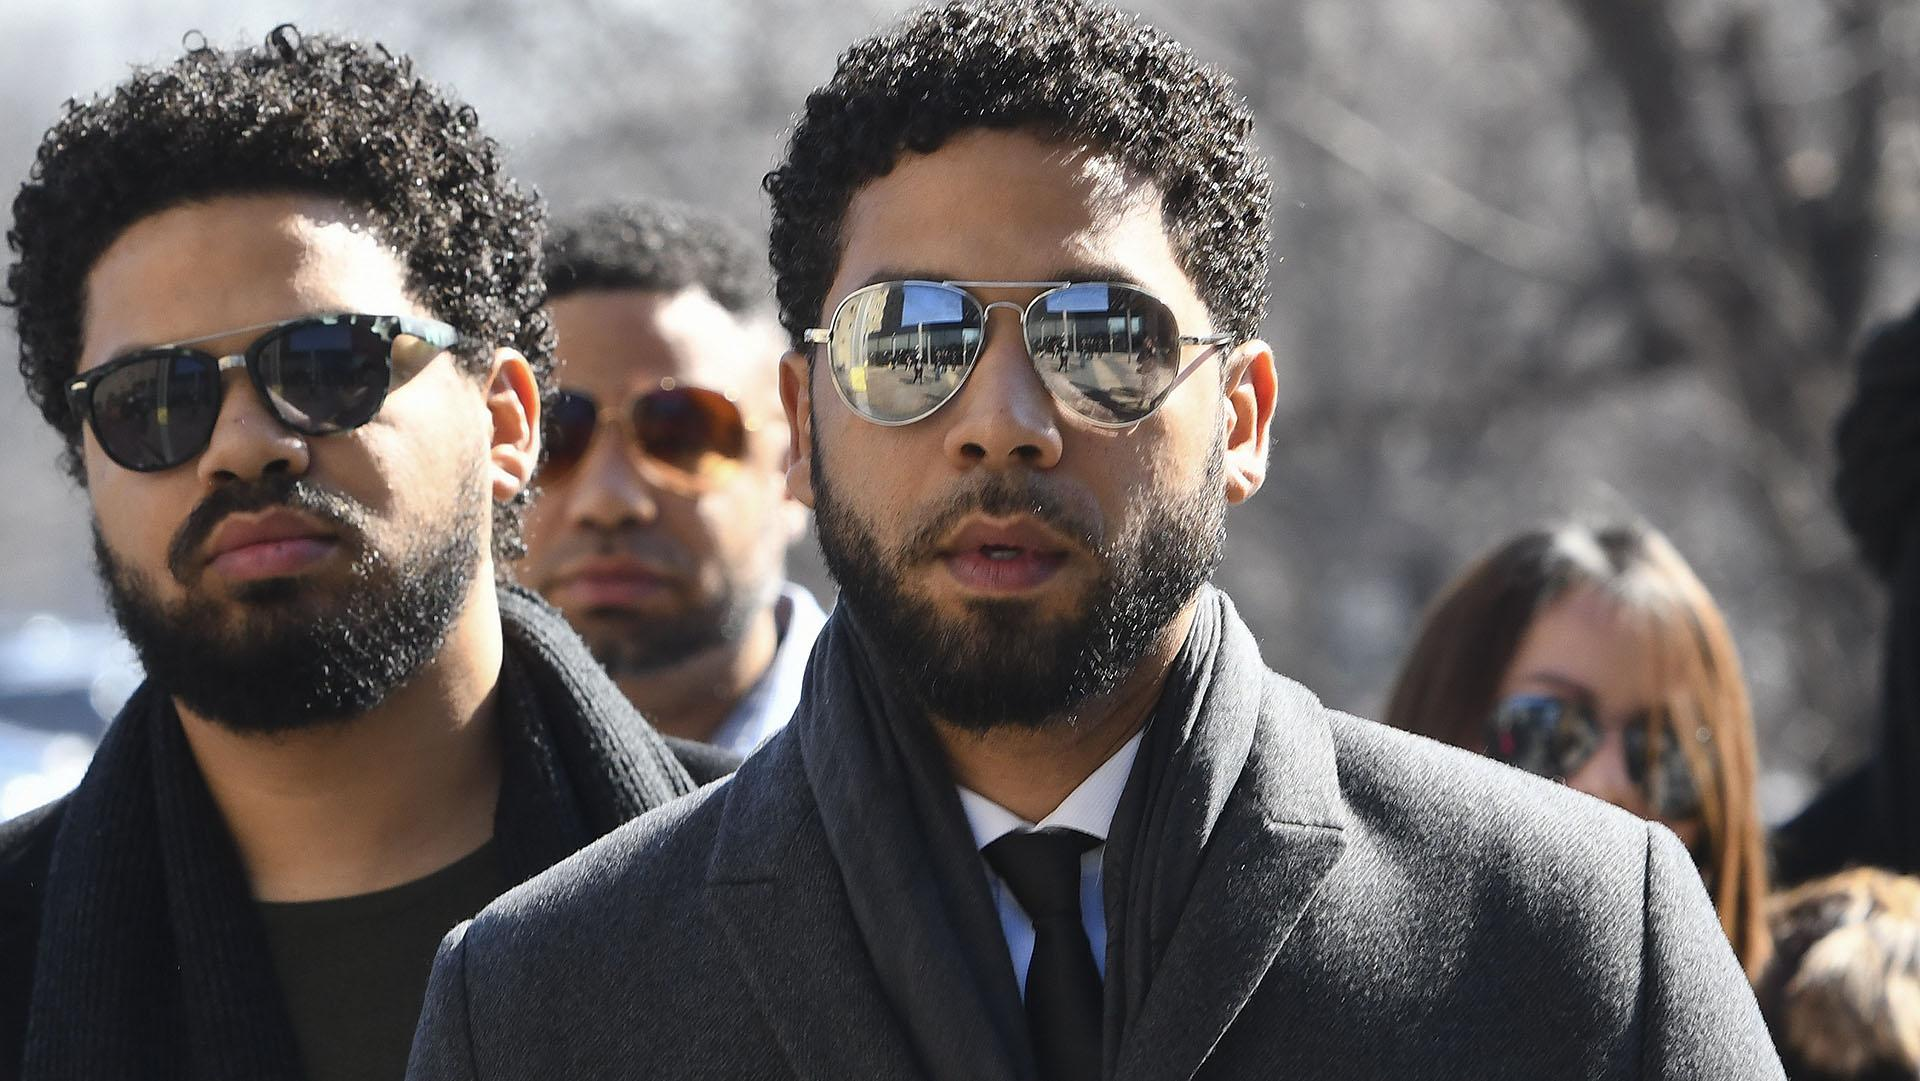 """Empire"" actor Jussie Smollett, center, arrives at Leighton Criminal Court Building for a hearing to discuss whether cameras will be allowed in the courtroom during his disorderly conduct case on Tuesday, March 12, 2019, in Chicago. (AP Photo / Matt Marton)"